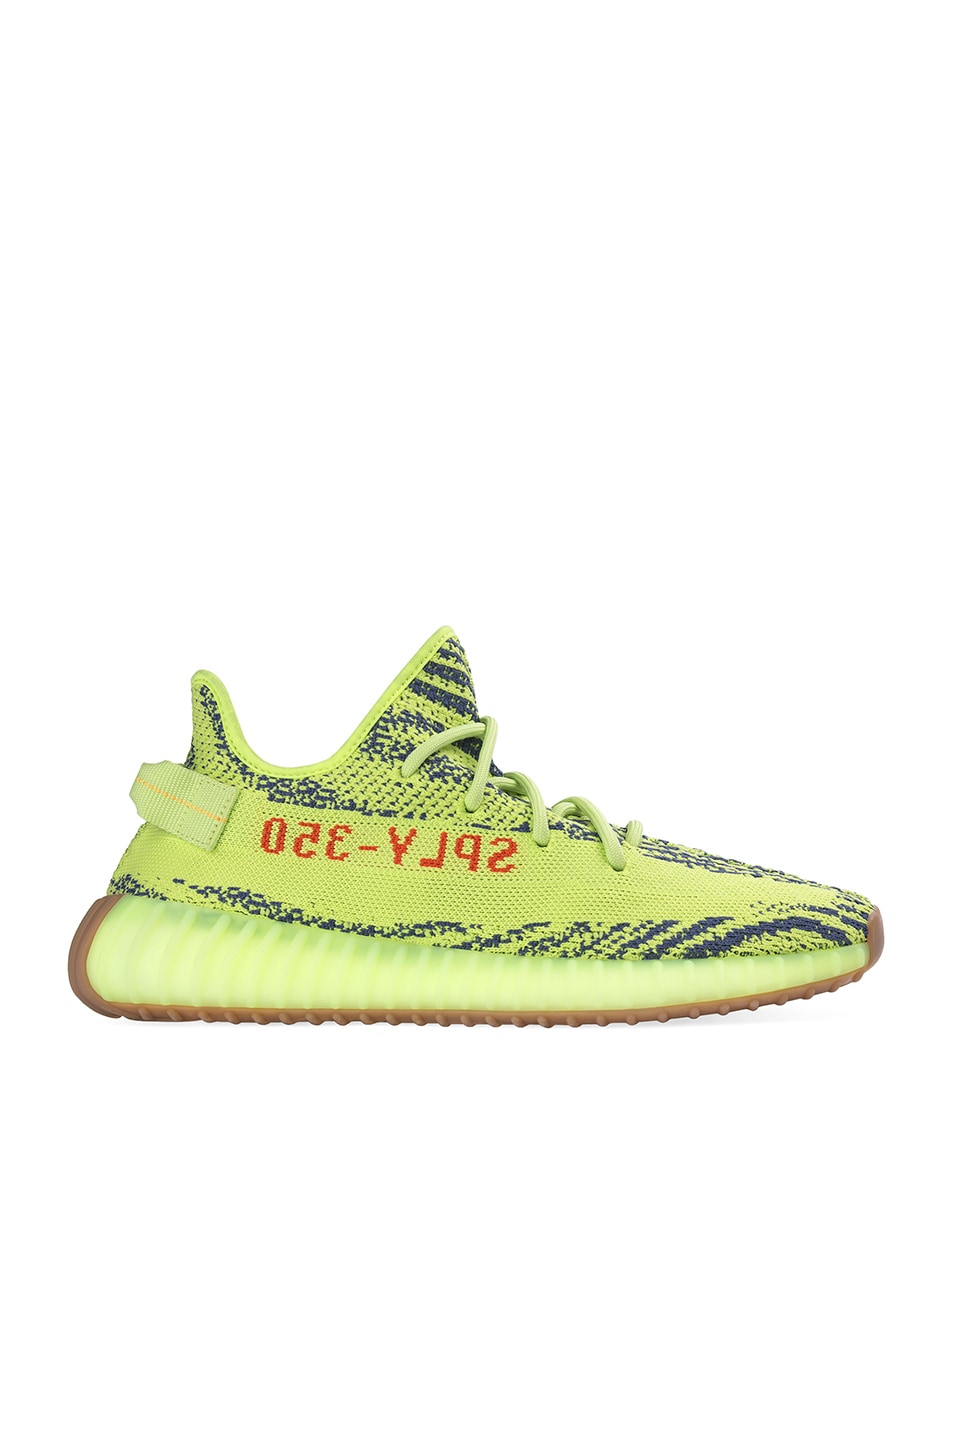 the best attitude 9f73c 60a0a Kanye West x Adidas Originals Yeezy Boost 350 V2 in Semi Frozen Yellow &  Grey Steel & Red | FWRD